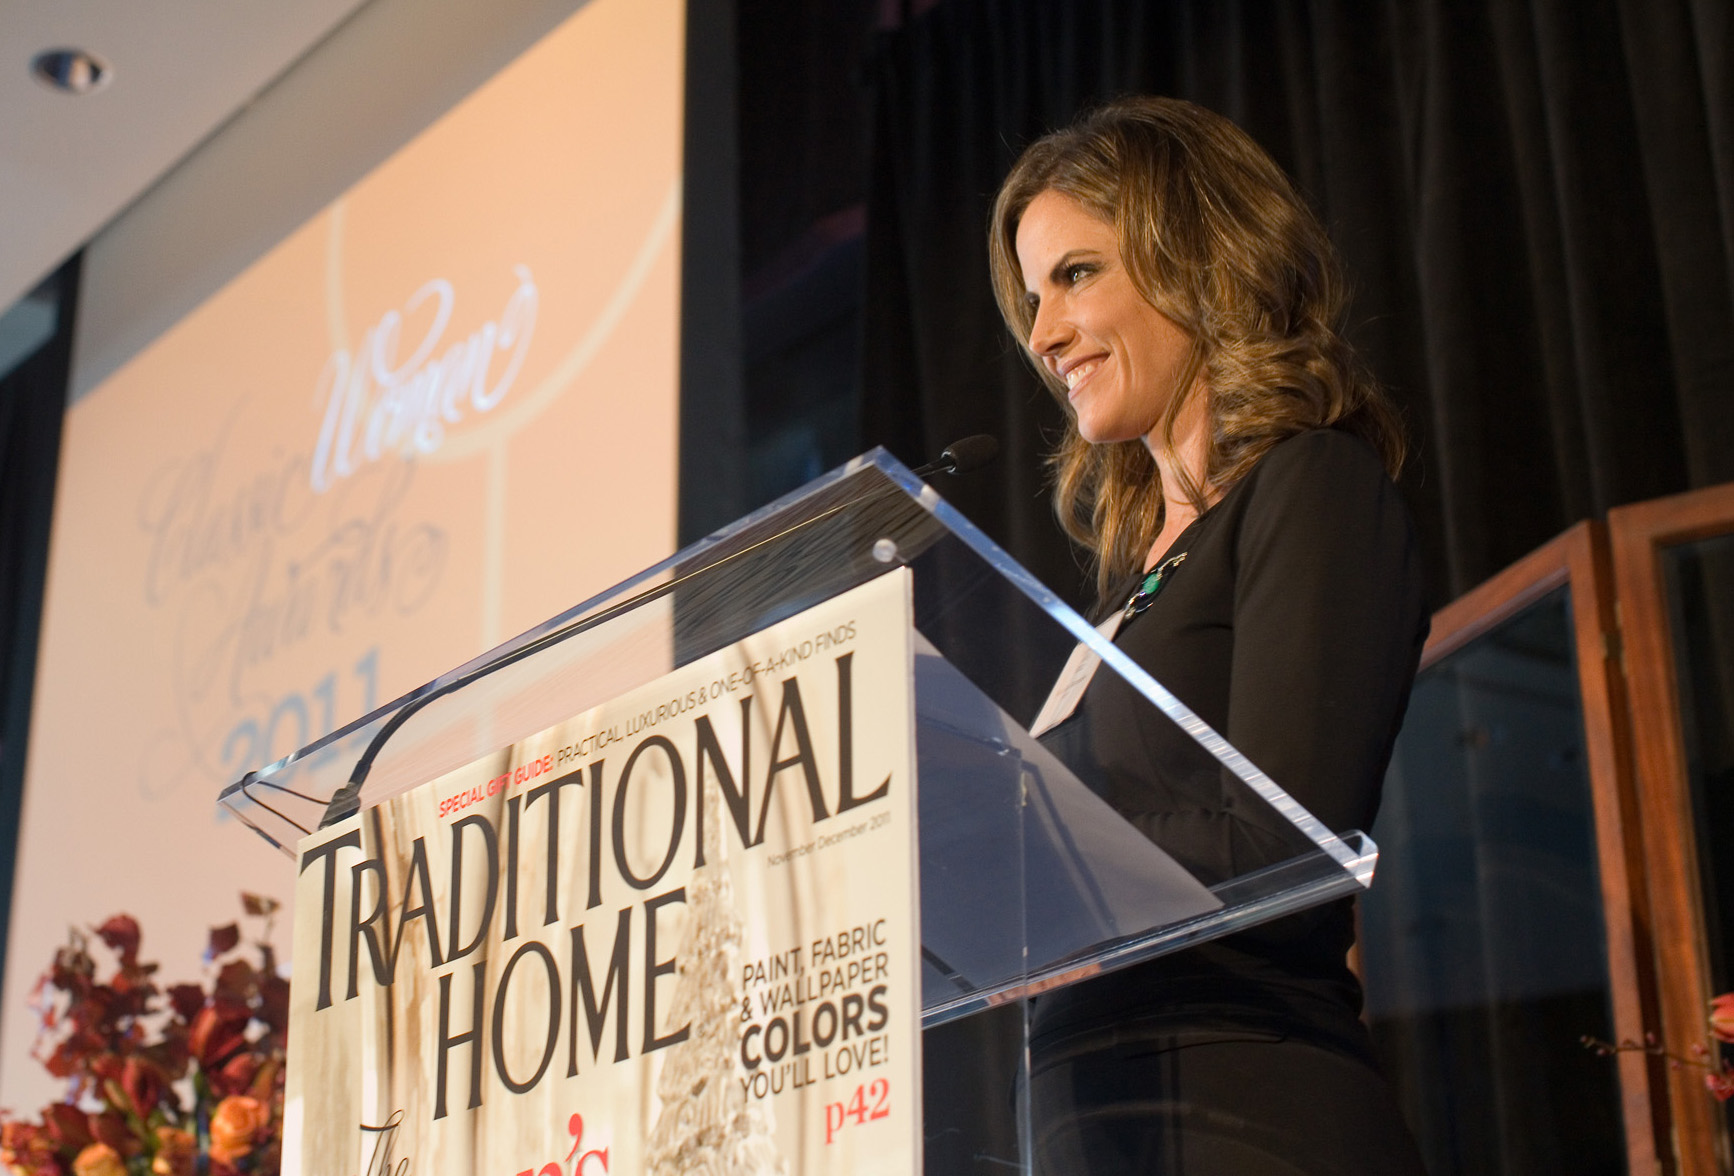 Traditional Home presents 7th Classic Woman Awards